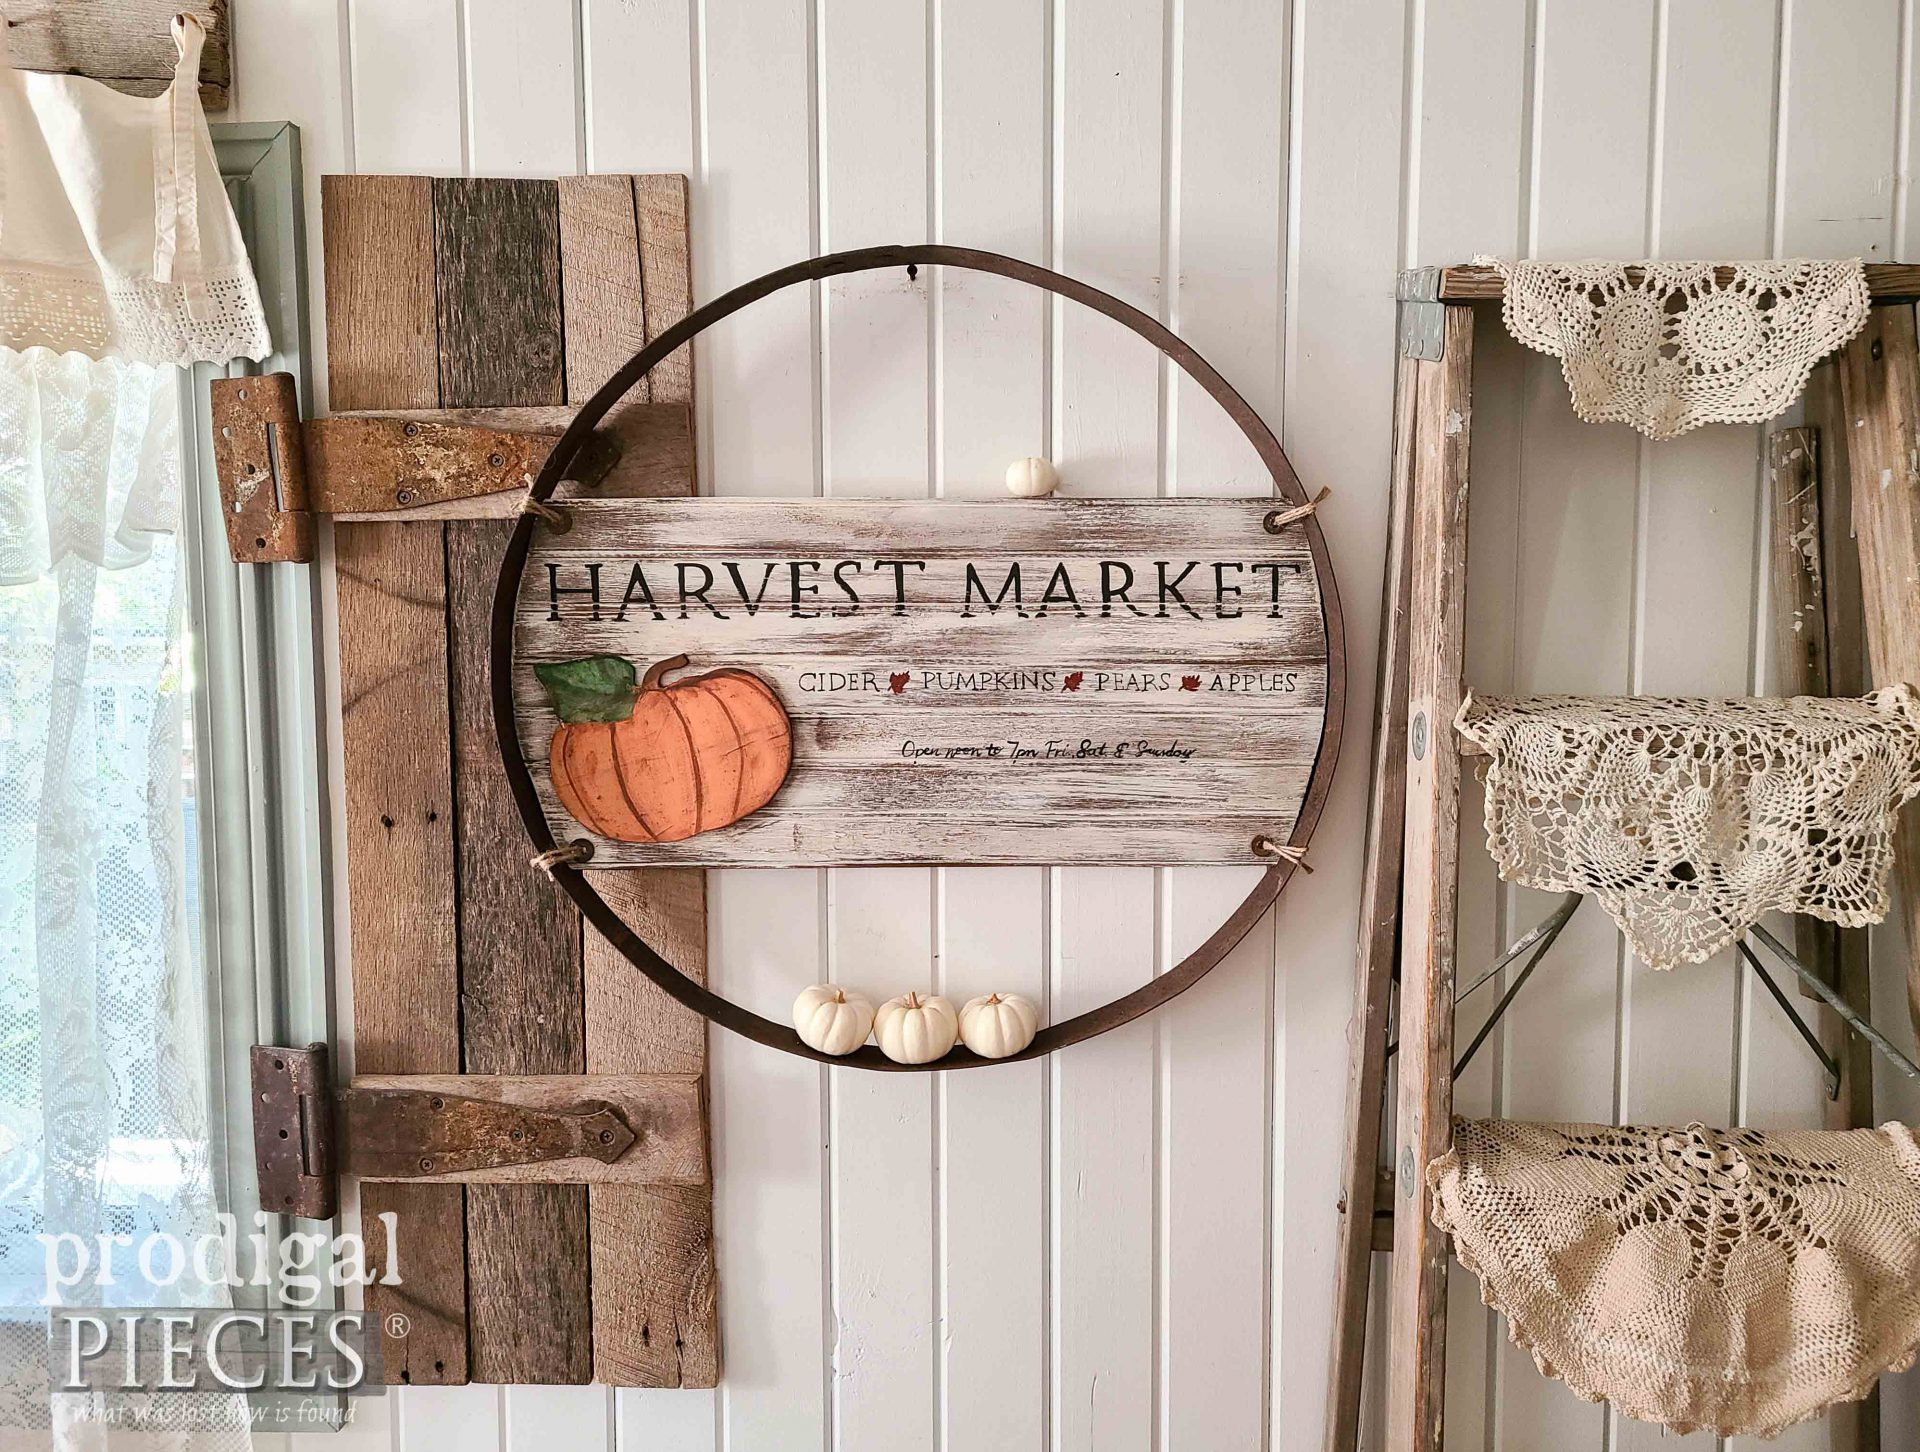 Fall Farmhouse Wall Art from Reclaimed Whiskey Ring Barrel by Larissa of Prodigal Pieces | prodigalpieces.com #prodigalpieces #farmhouse #fall #diy